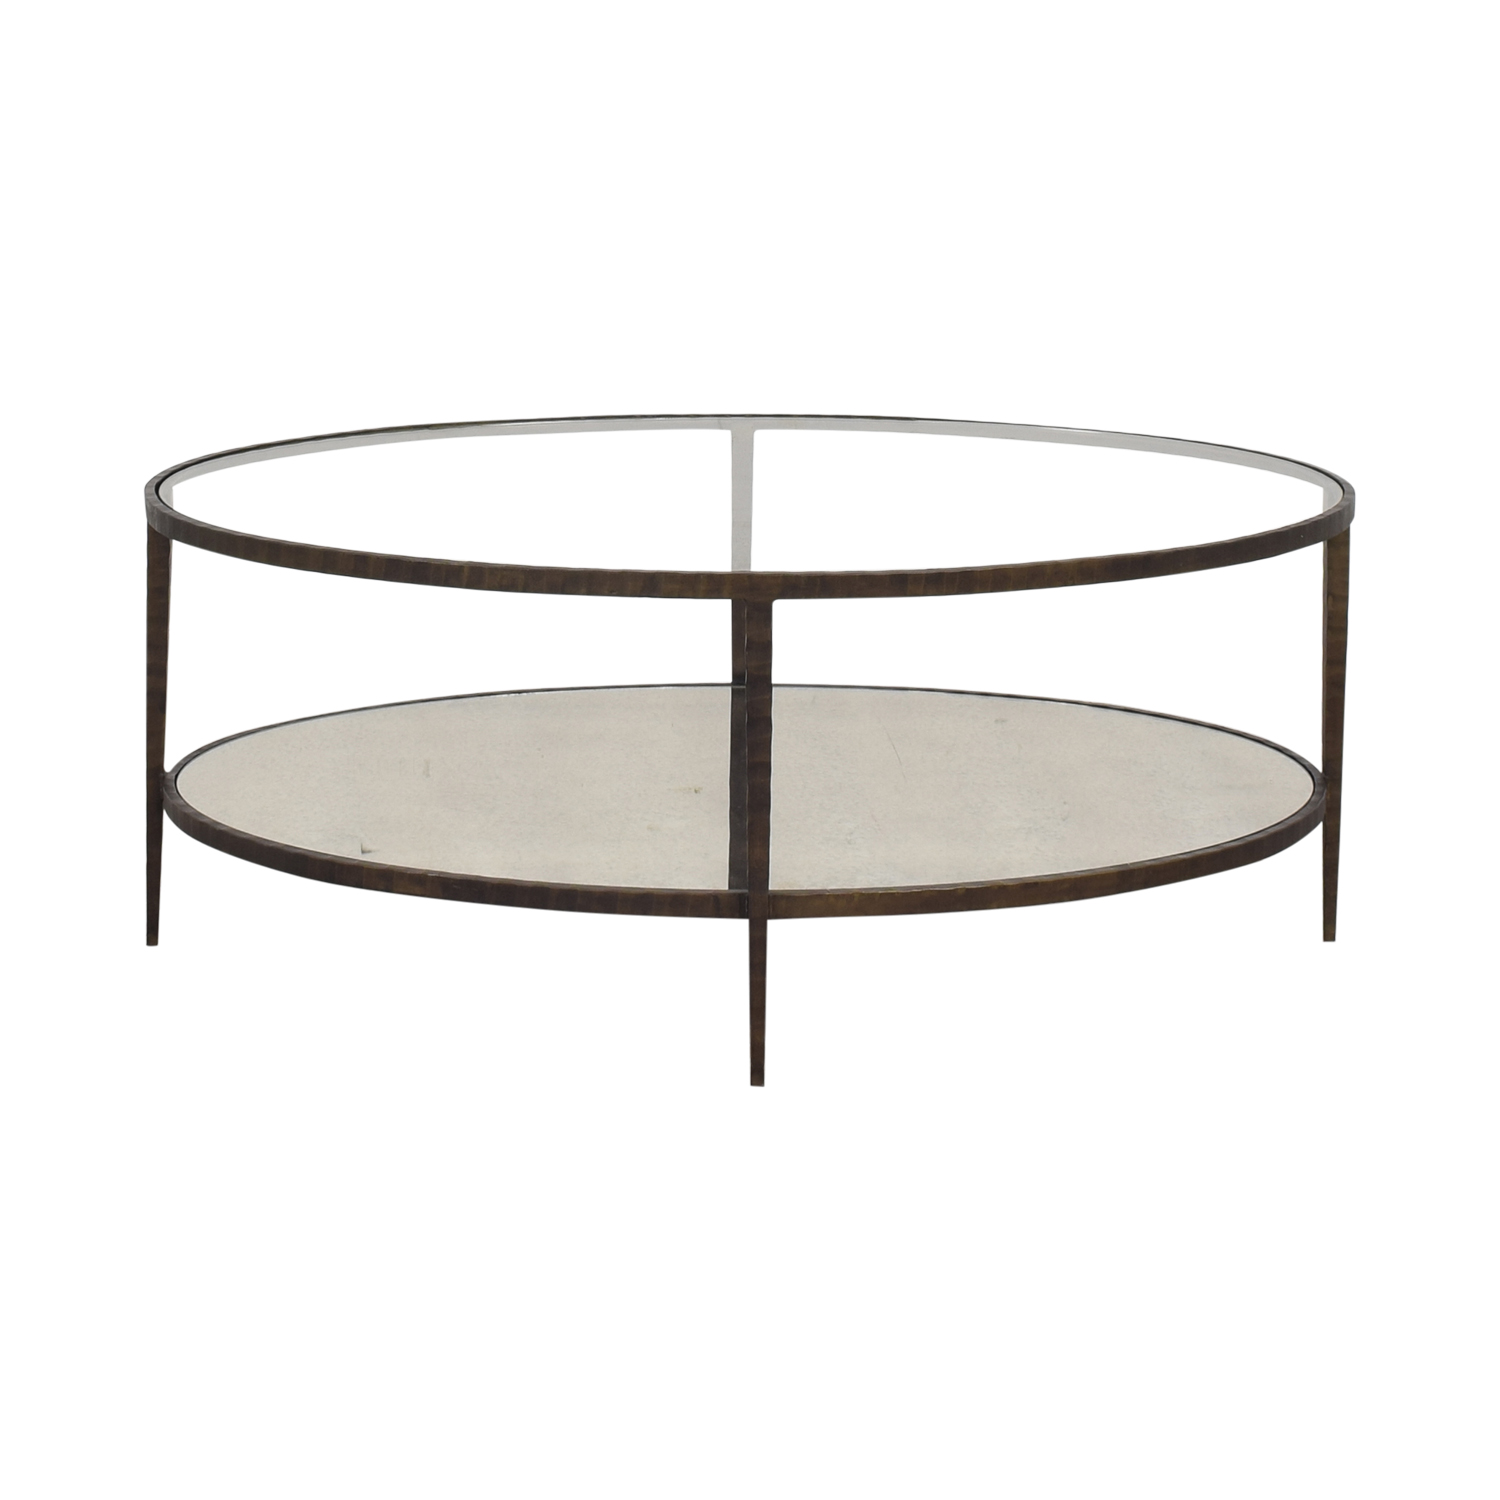 Crate & Barrel Clairemont Oval Coffee Table used